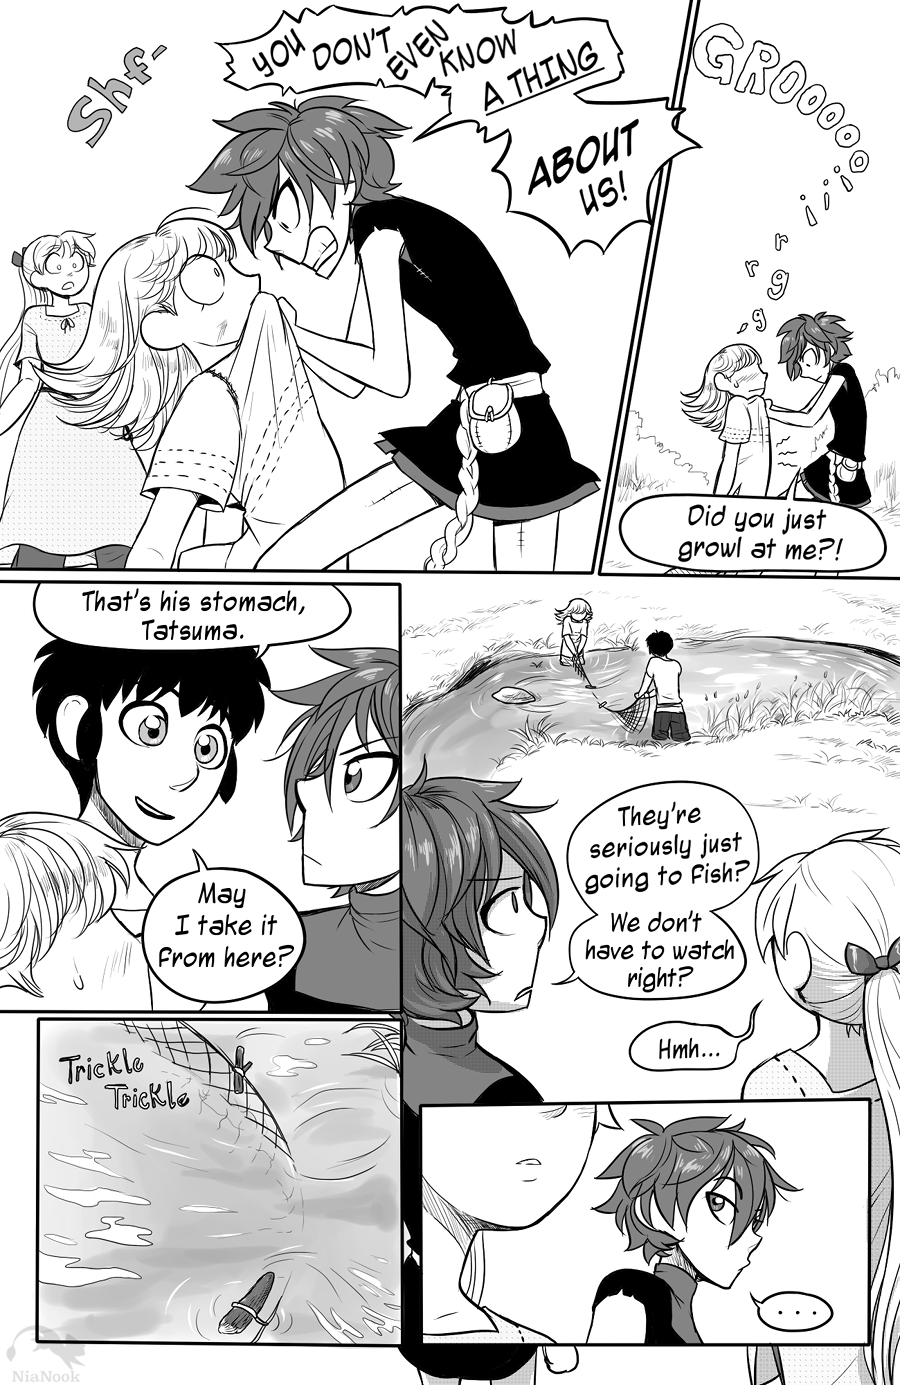 Page 27 (Book 4)